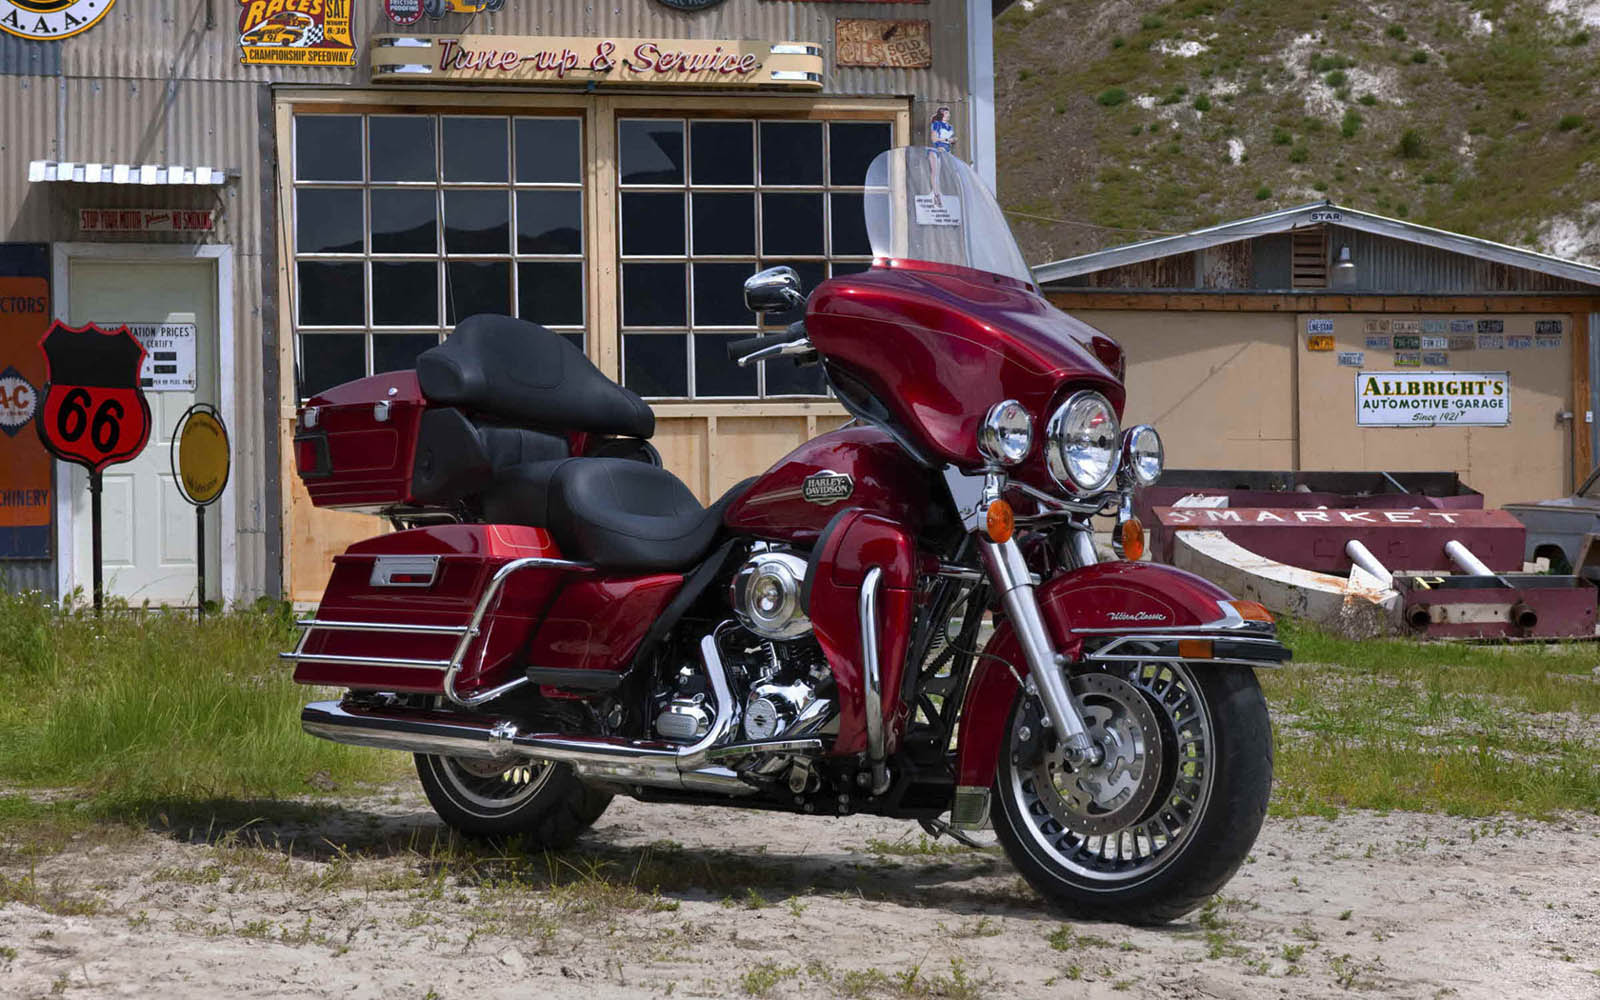 1600x1000 - Harley-Davidson Electra Glide Ultra Classic Wallpapers 16